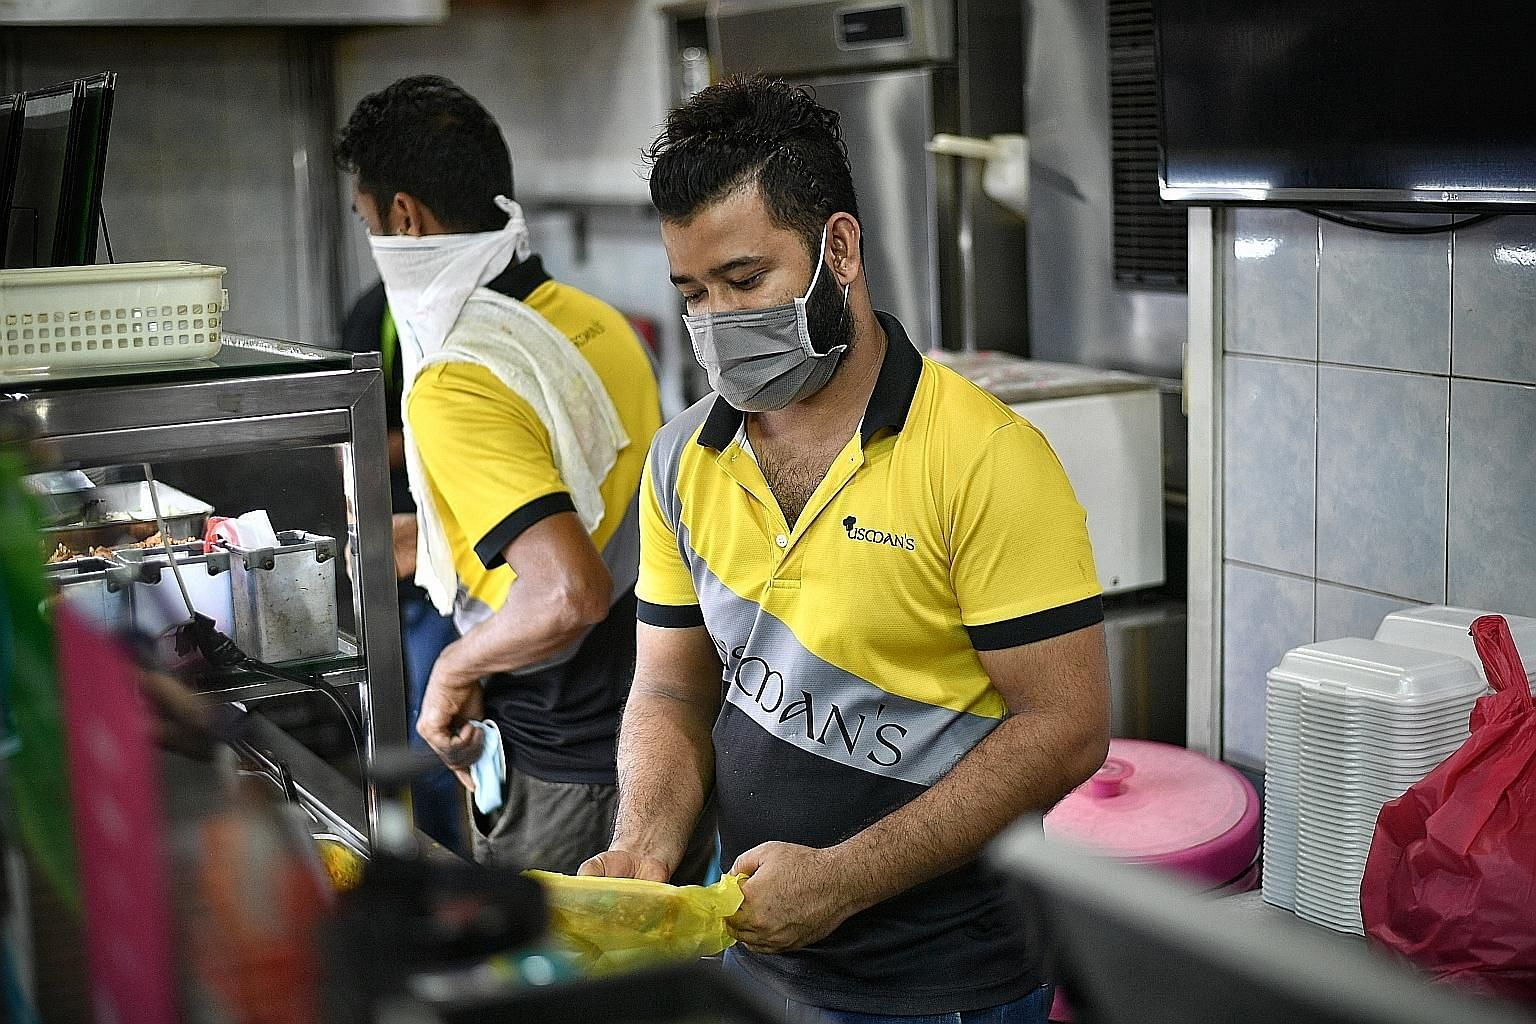 Workers at Usman Restaurant donning masks while preparing food for delivery yesterday. Such facial protective gear is mandatory from today for all workers engaged in the sale and preparation of food and drinks, to safeguard public health and prevent